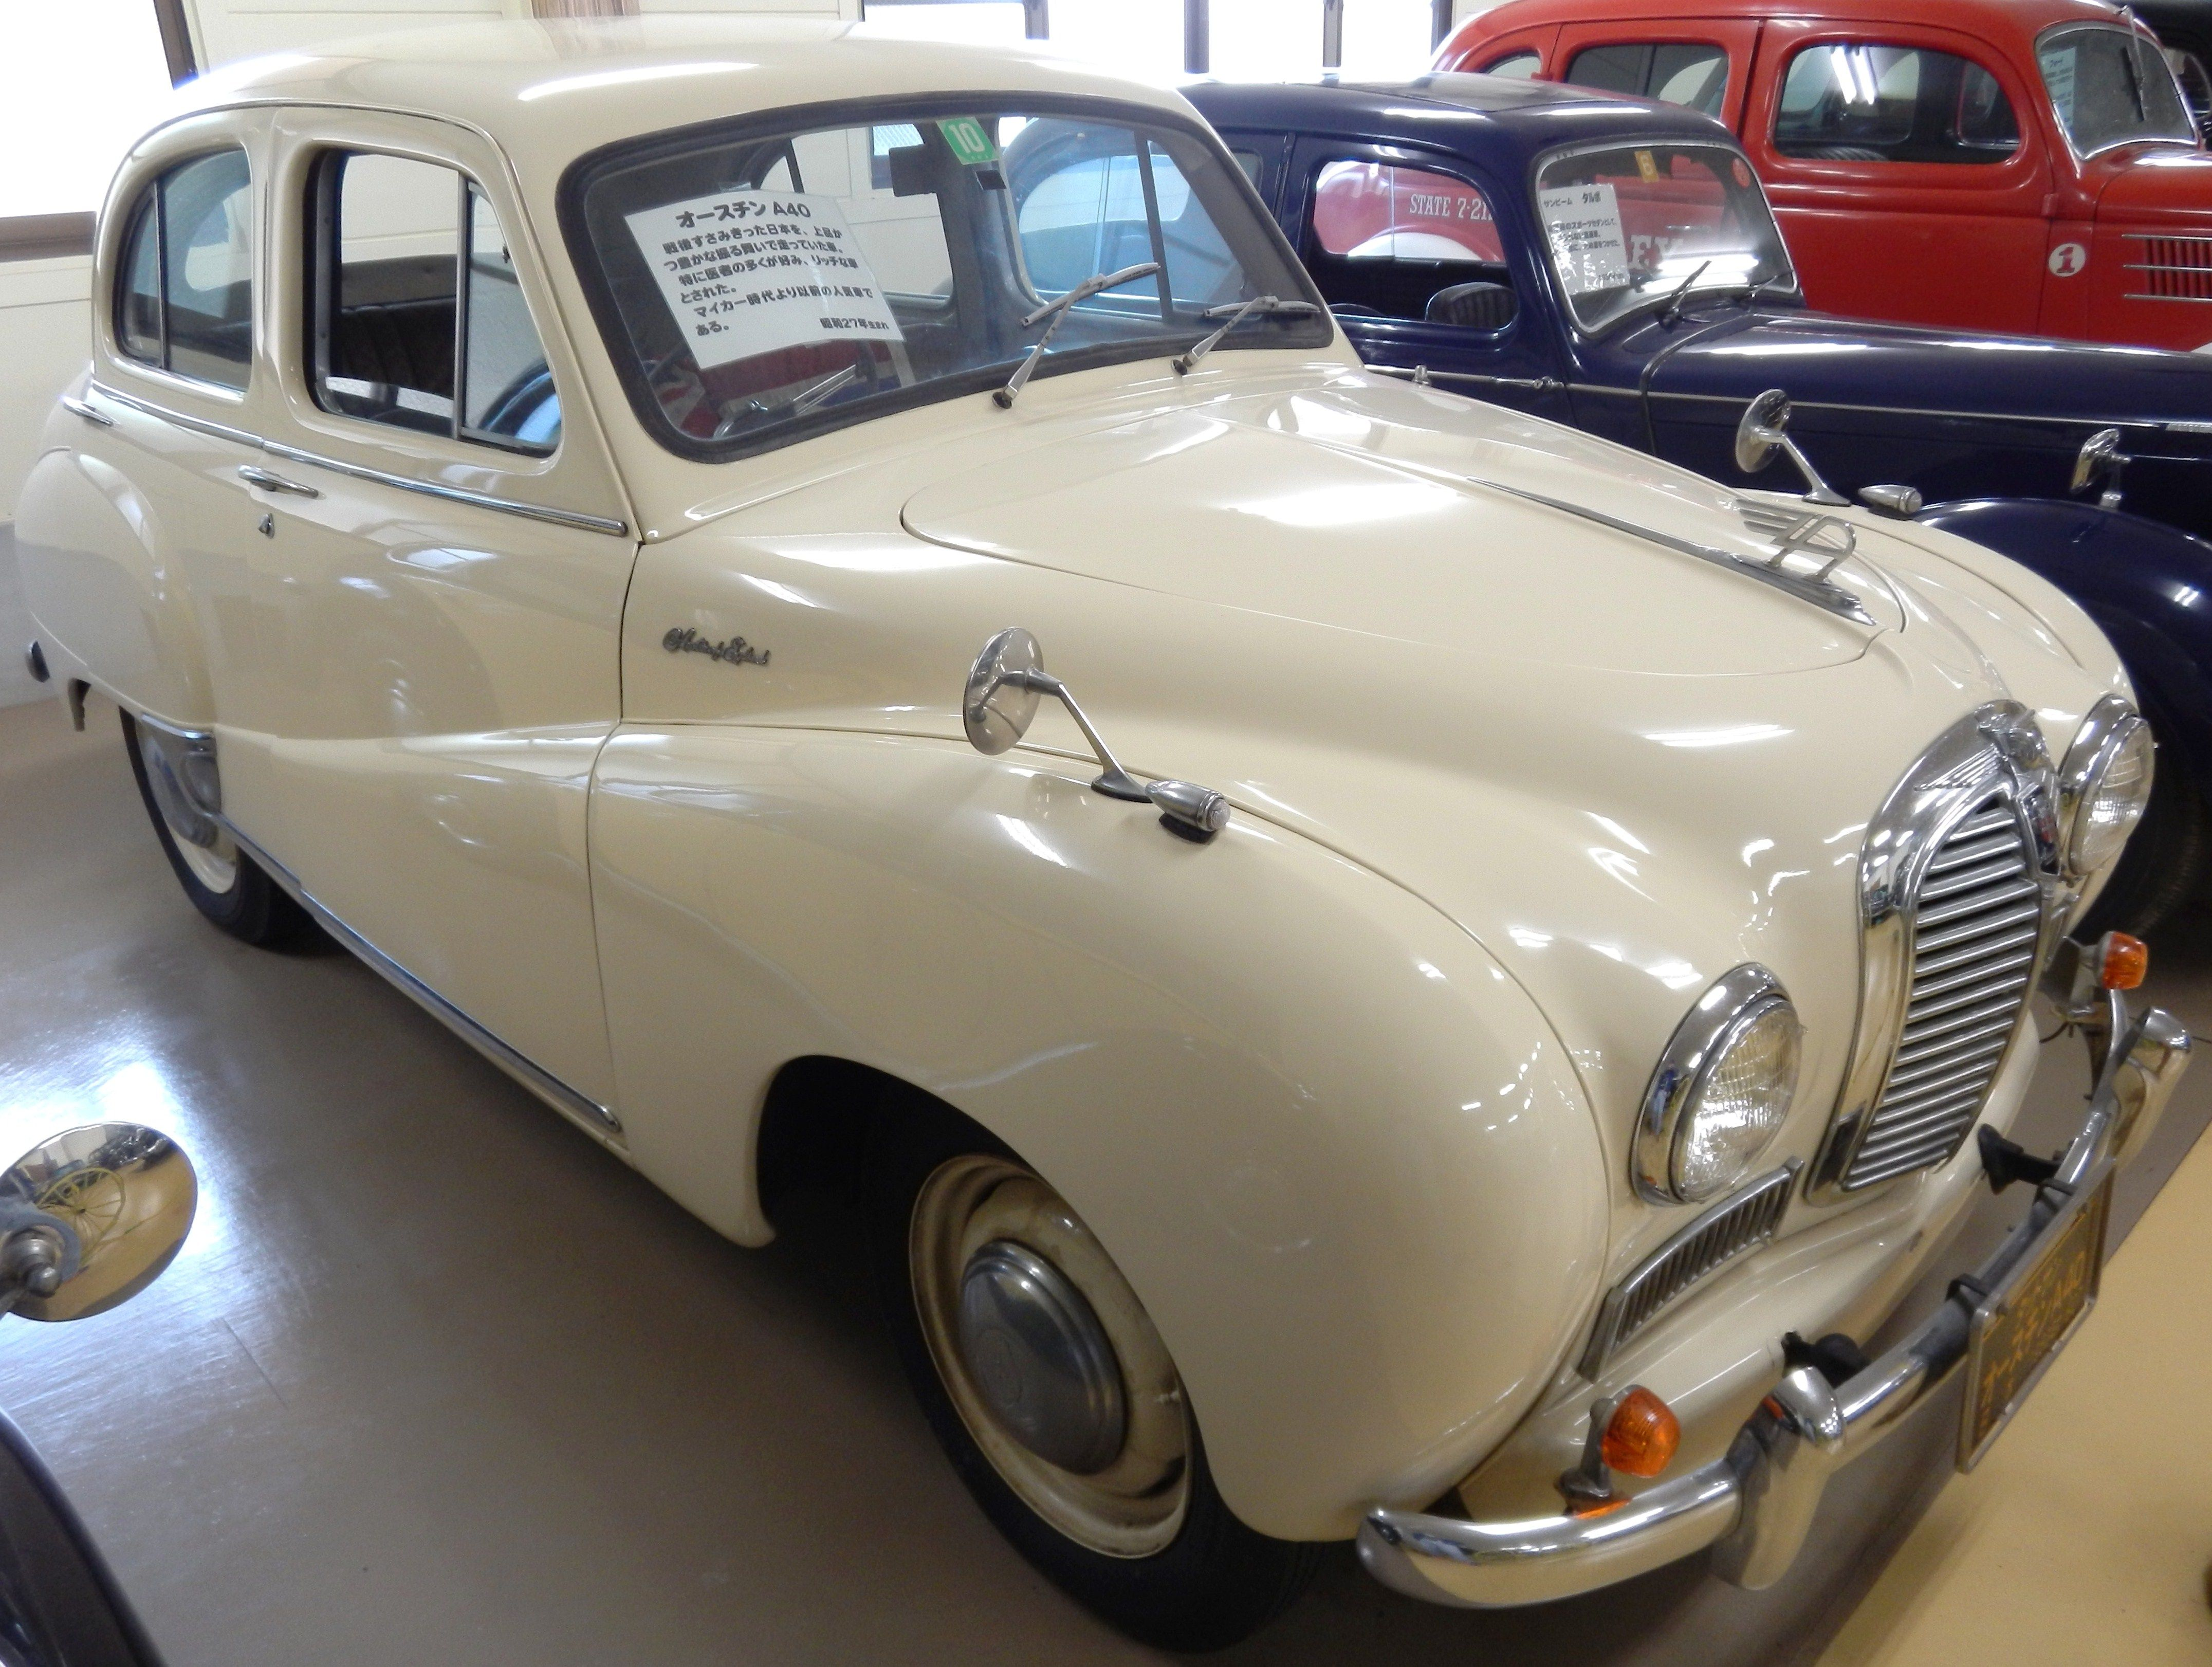 JUNE 30 2009 Lost Star 1952 Austin A40 the reality behind American